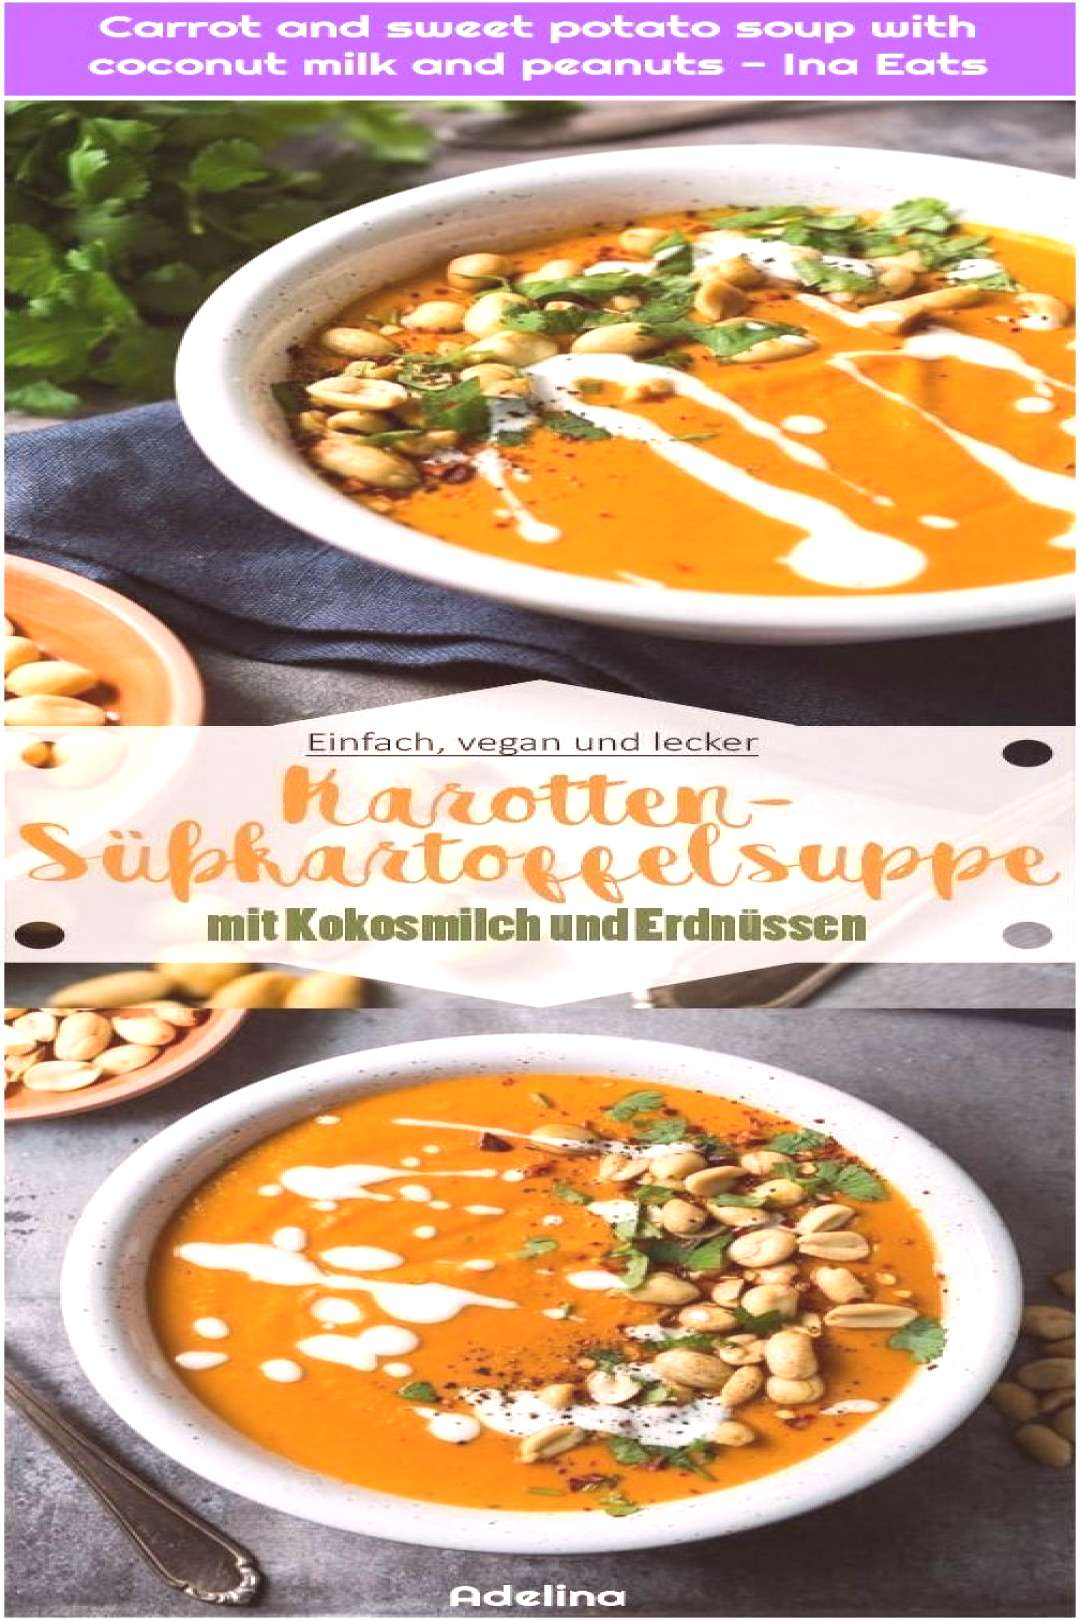 Carrot and sweet potato soup with coconut milk and peanuts - Ina Eats 1. Carrot and sweet potato so